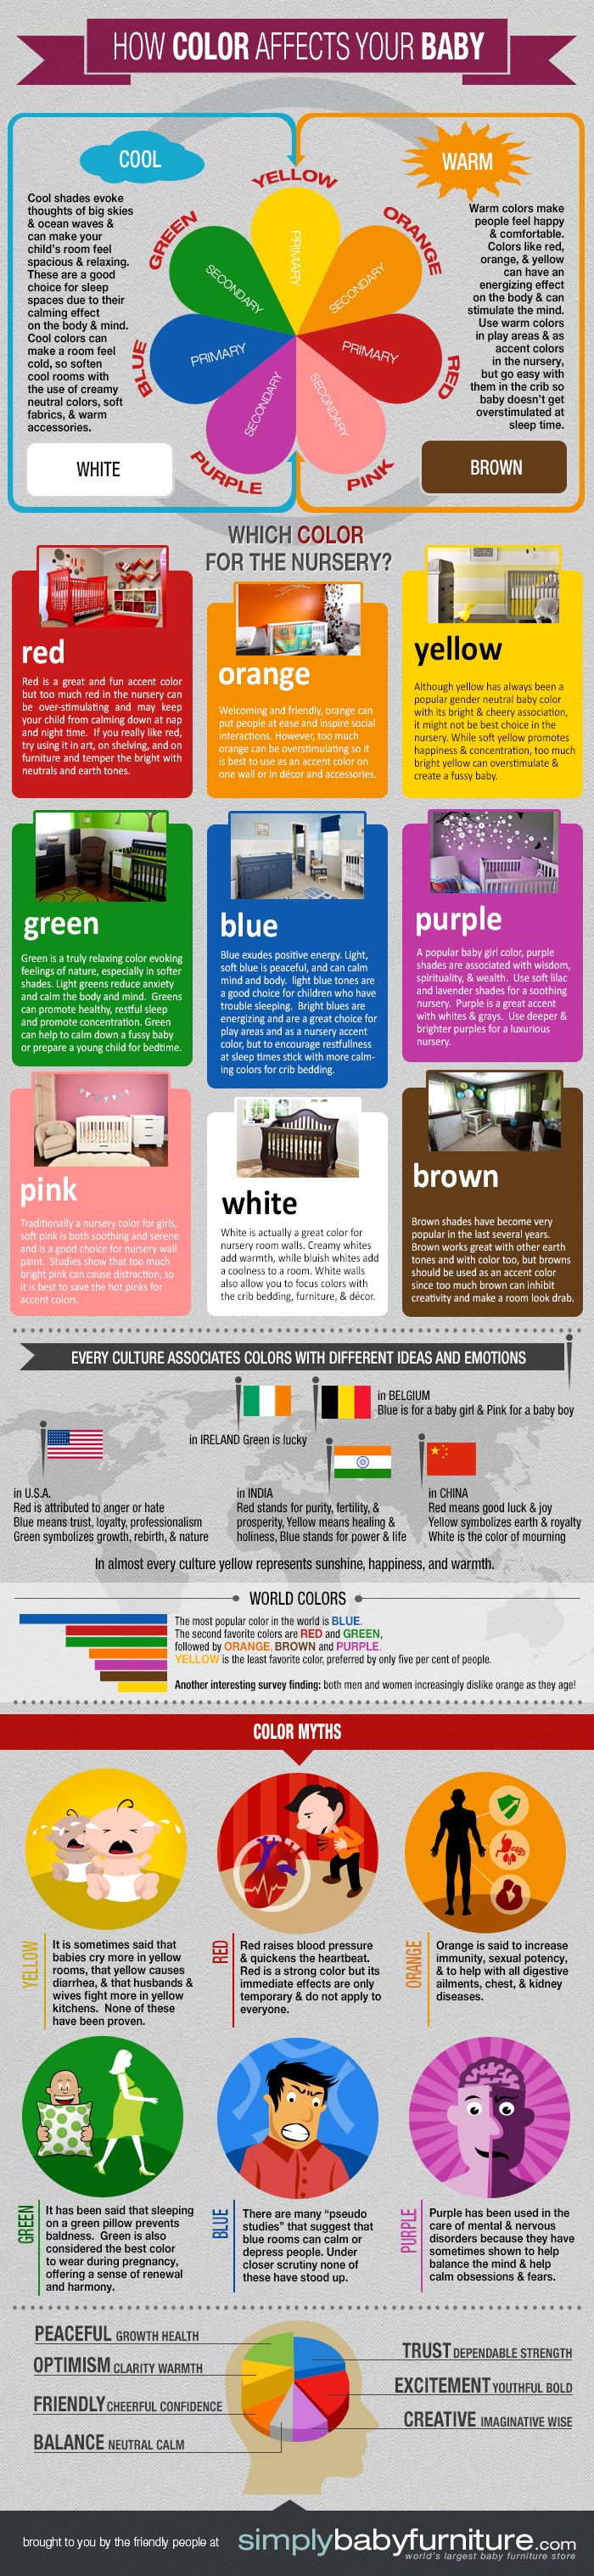 nursery color guide how color affects your babys mood created this with a bunch of great info to help in choosing nursery colors or paint colors used - Paint Colors And Moods